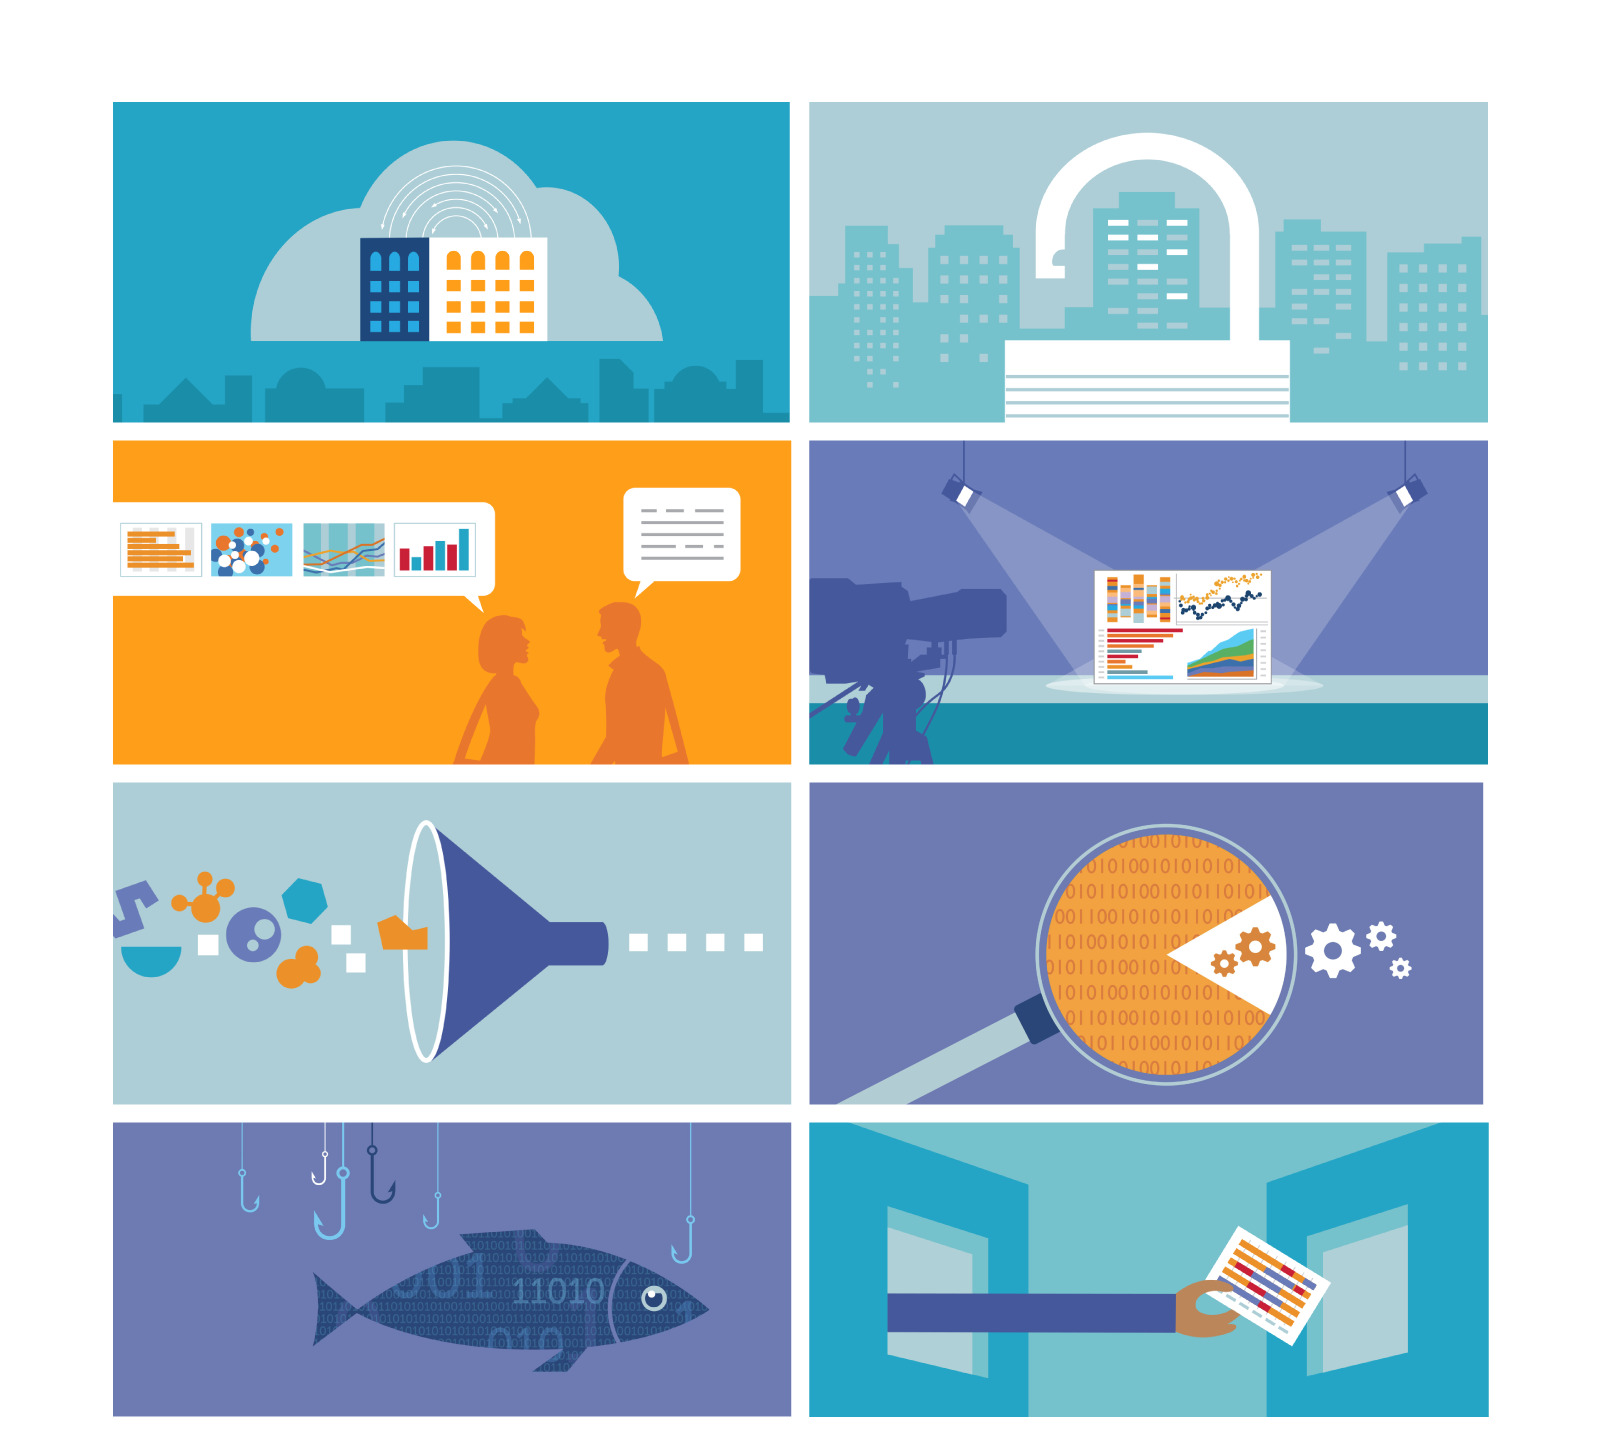 Images for PPT deck on top trends - Tableau Software